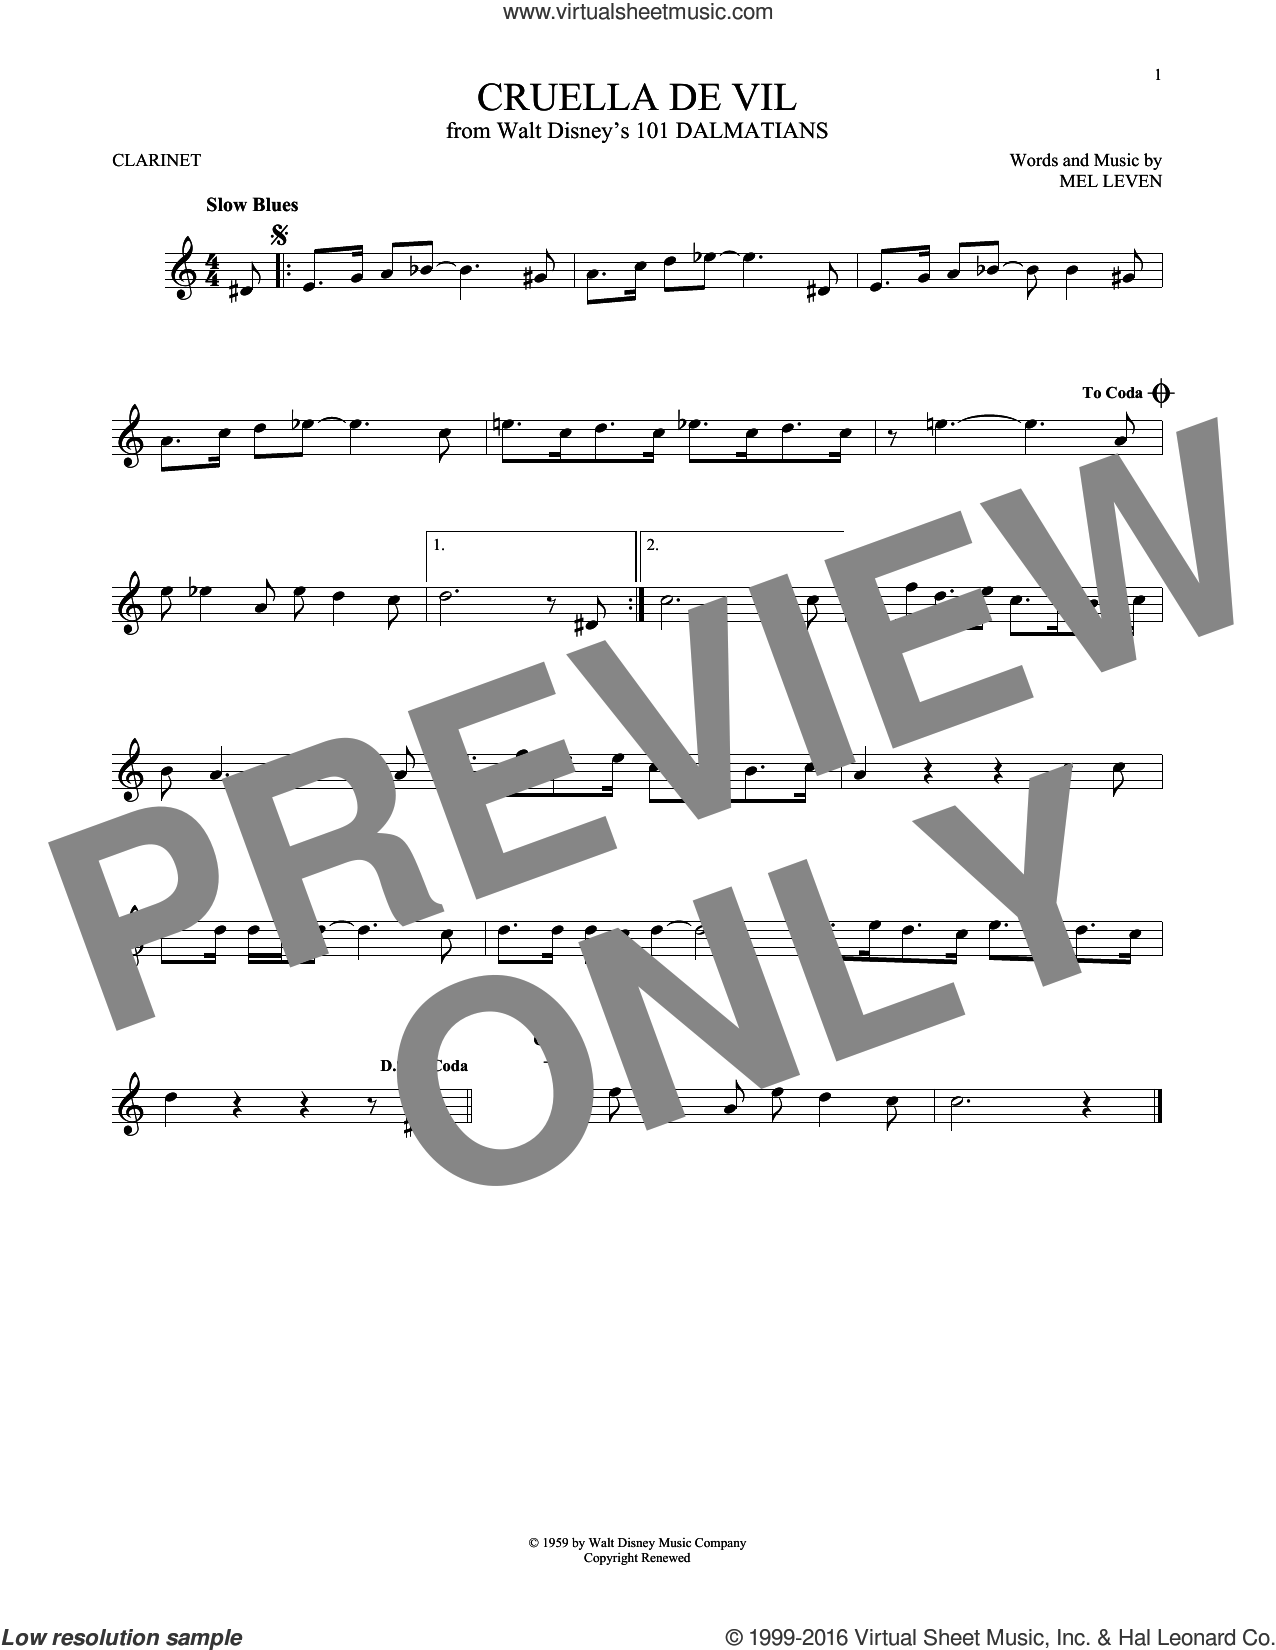 Cruella De Vil sheet music for clarinet solo by Mel Leven, intermediate skill level